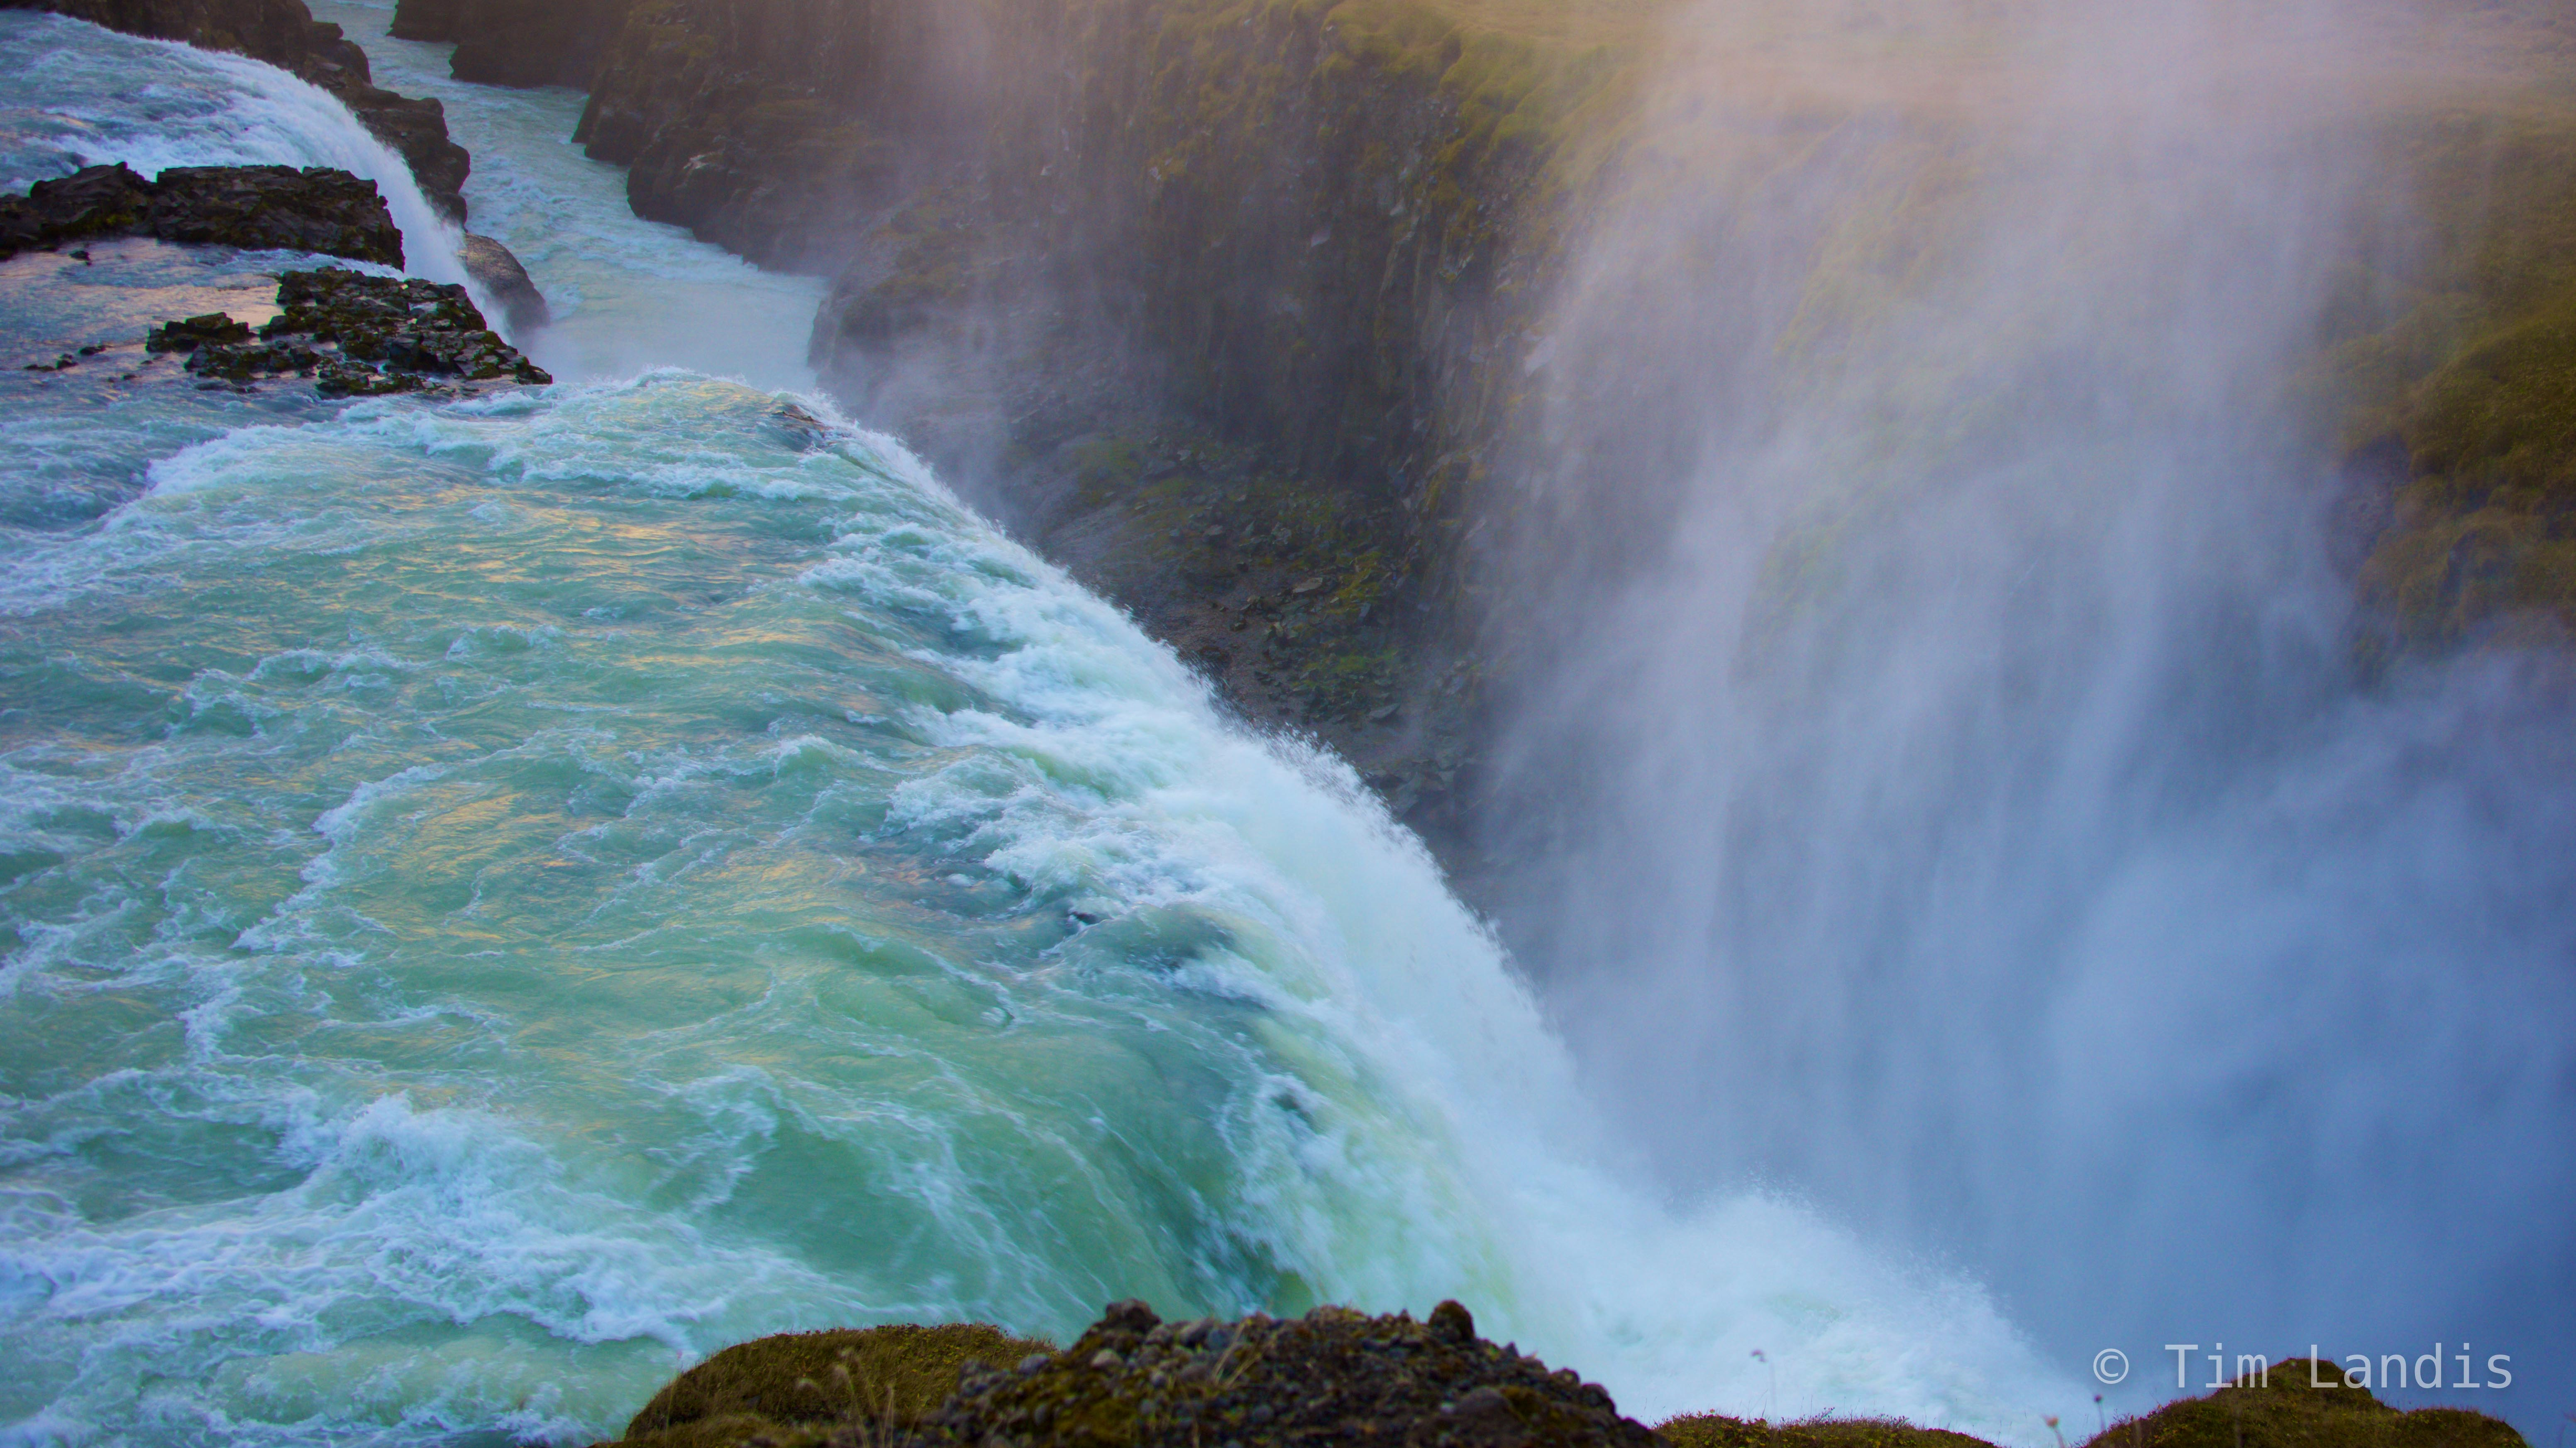 Gullfoss, Iceland, mist, reflections, roaring waters, photo